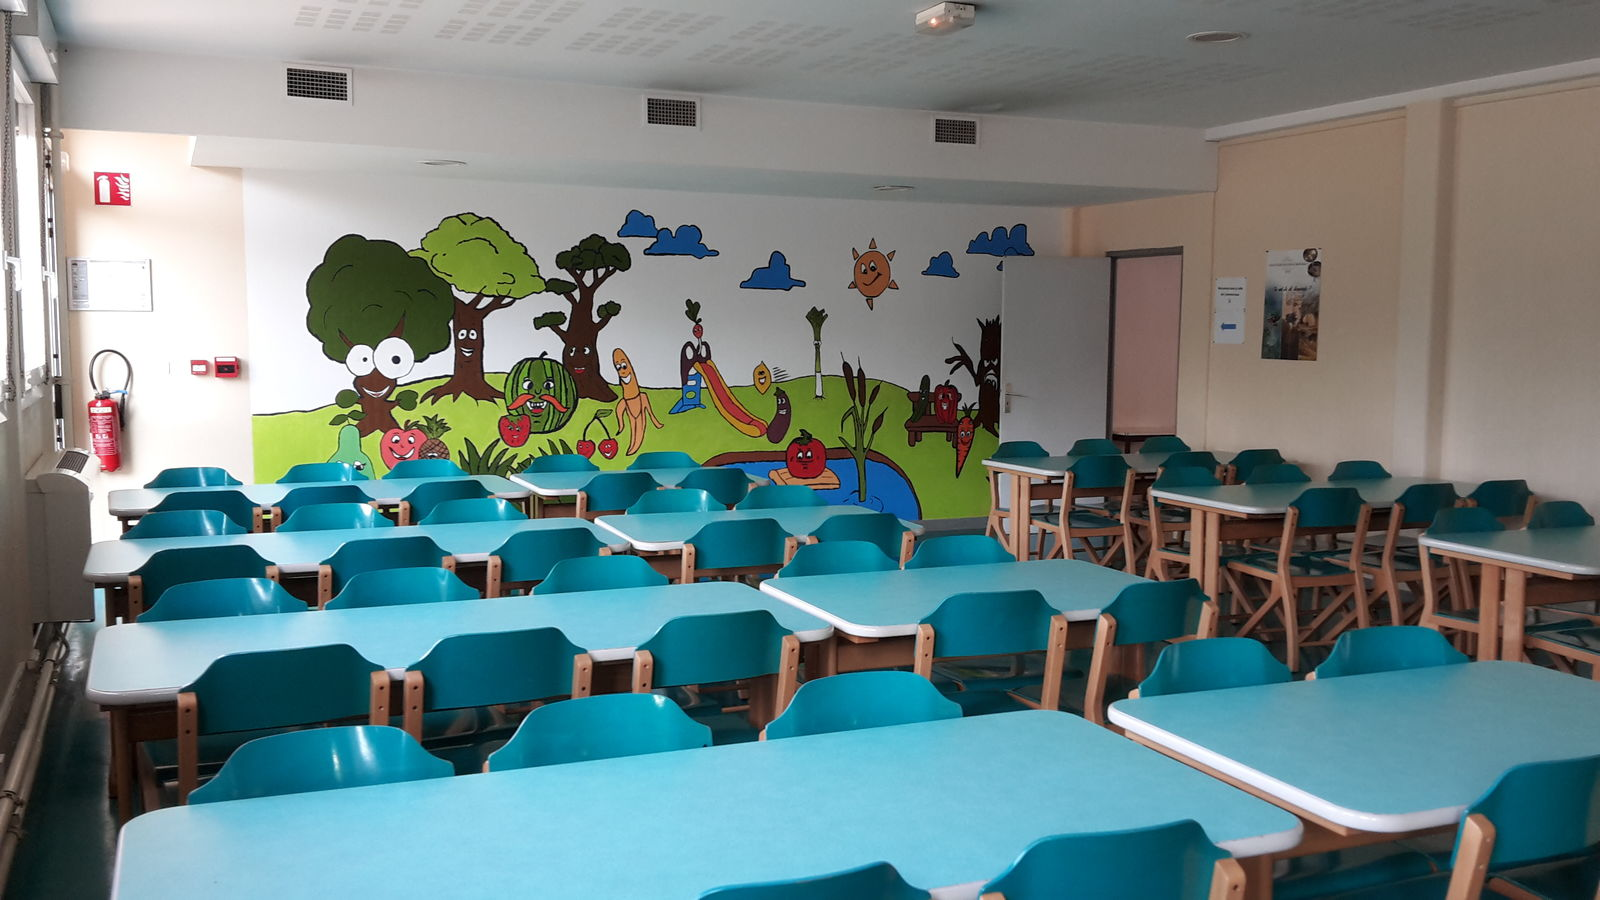 Le restaurant scolaire for Idee amenagement entree strasbourg